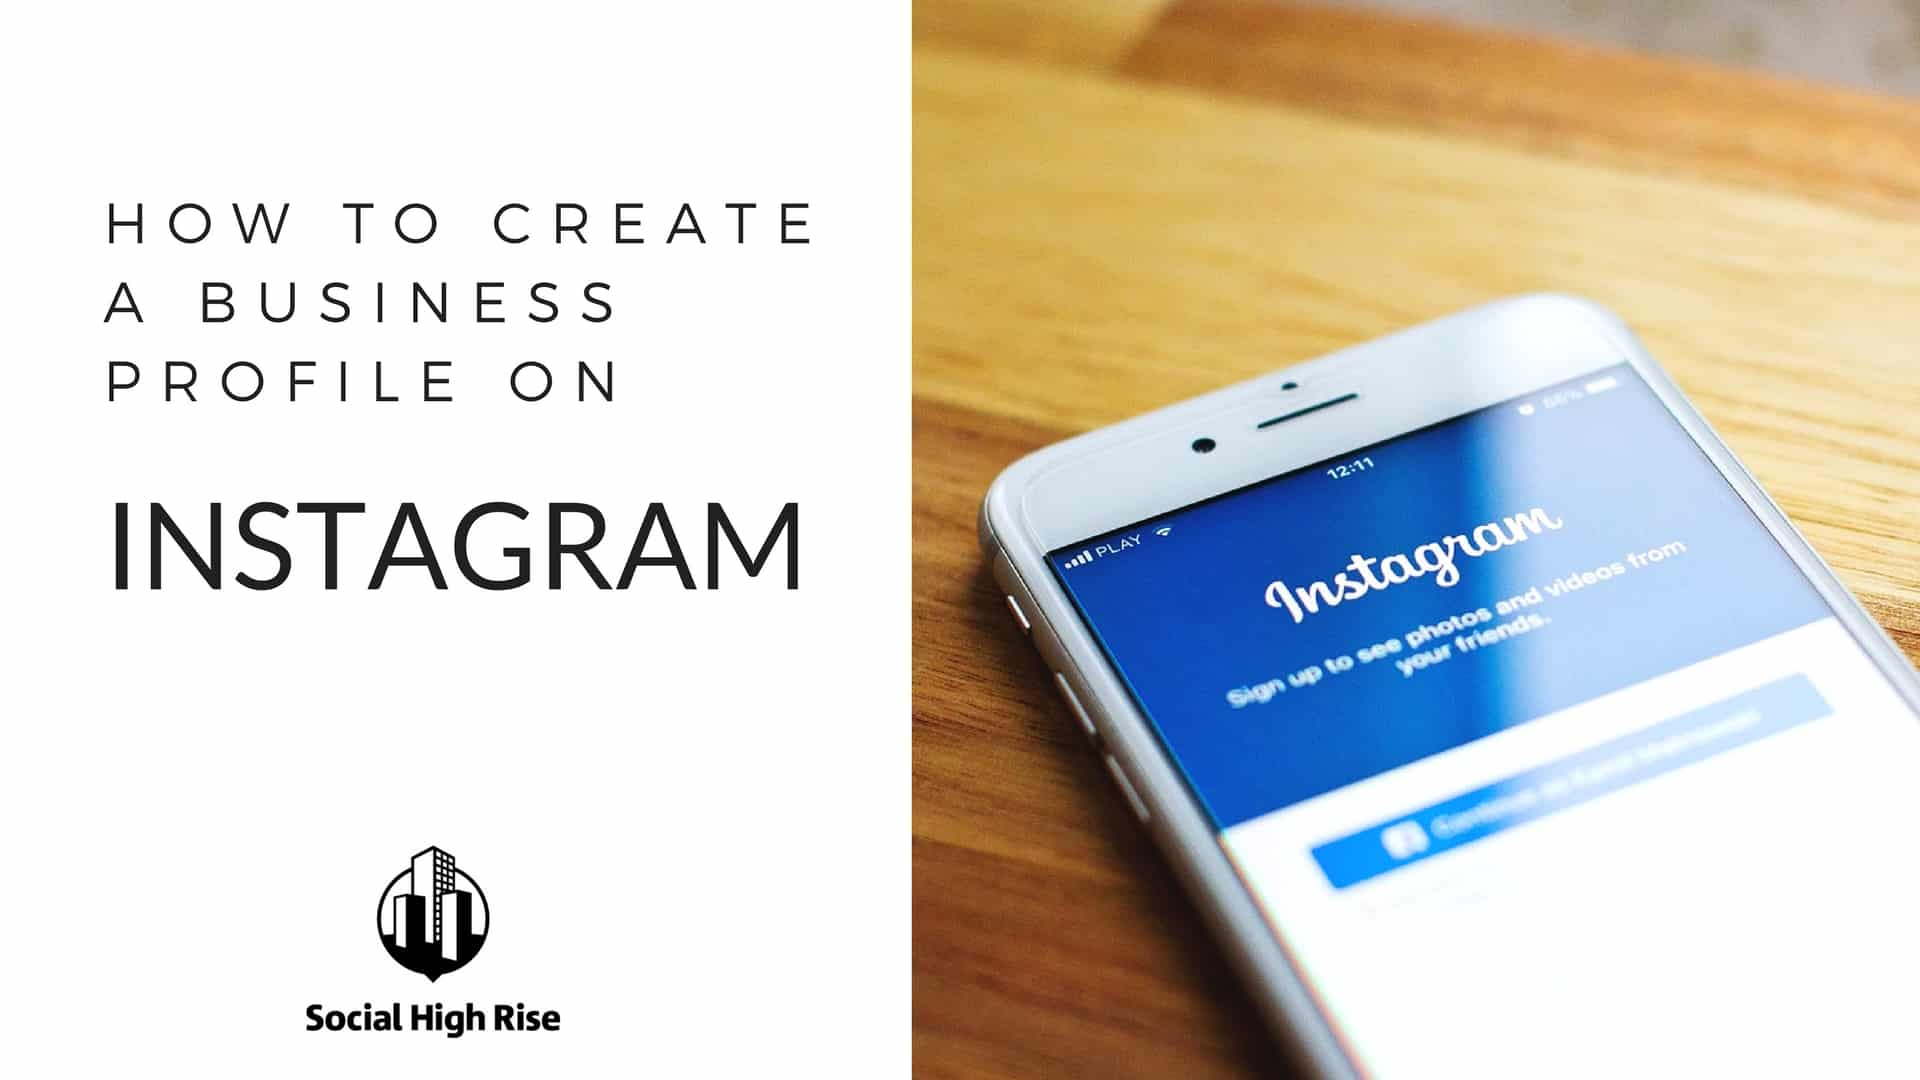 How to create an instagram business account for your restaurant creating a business profile on instagram reheart Choice Image